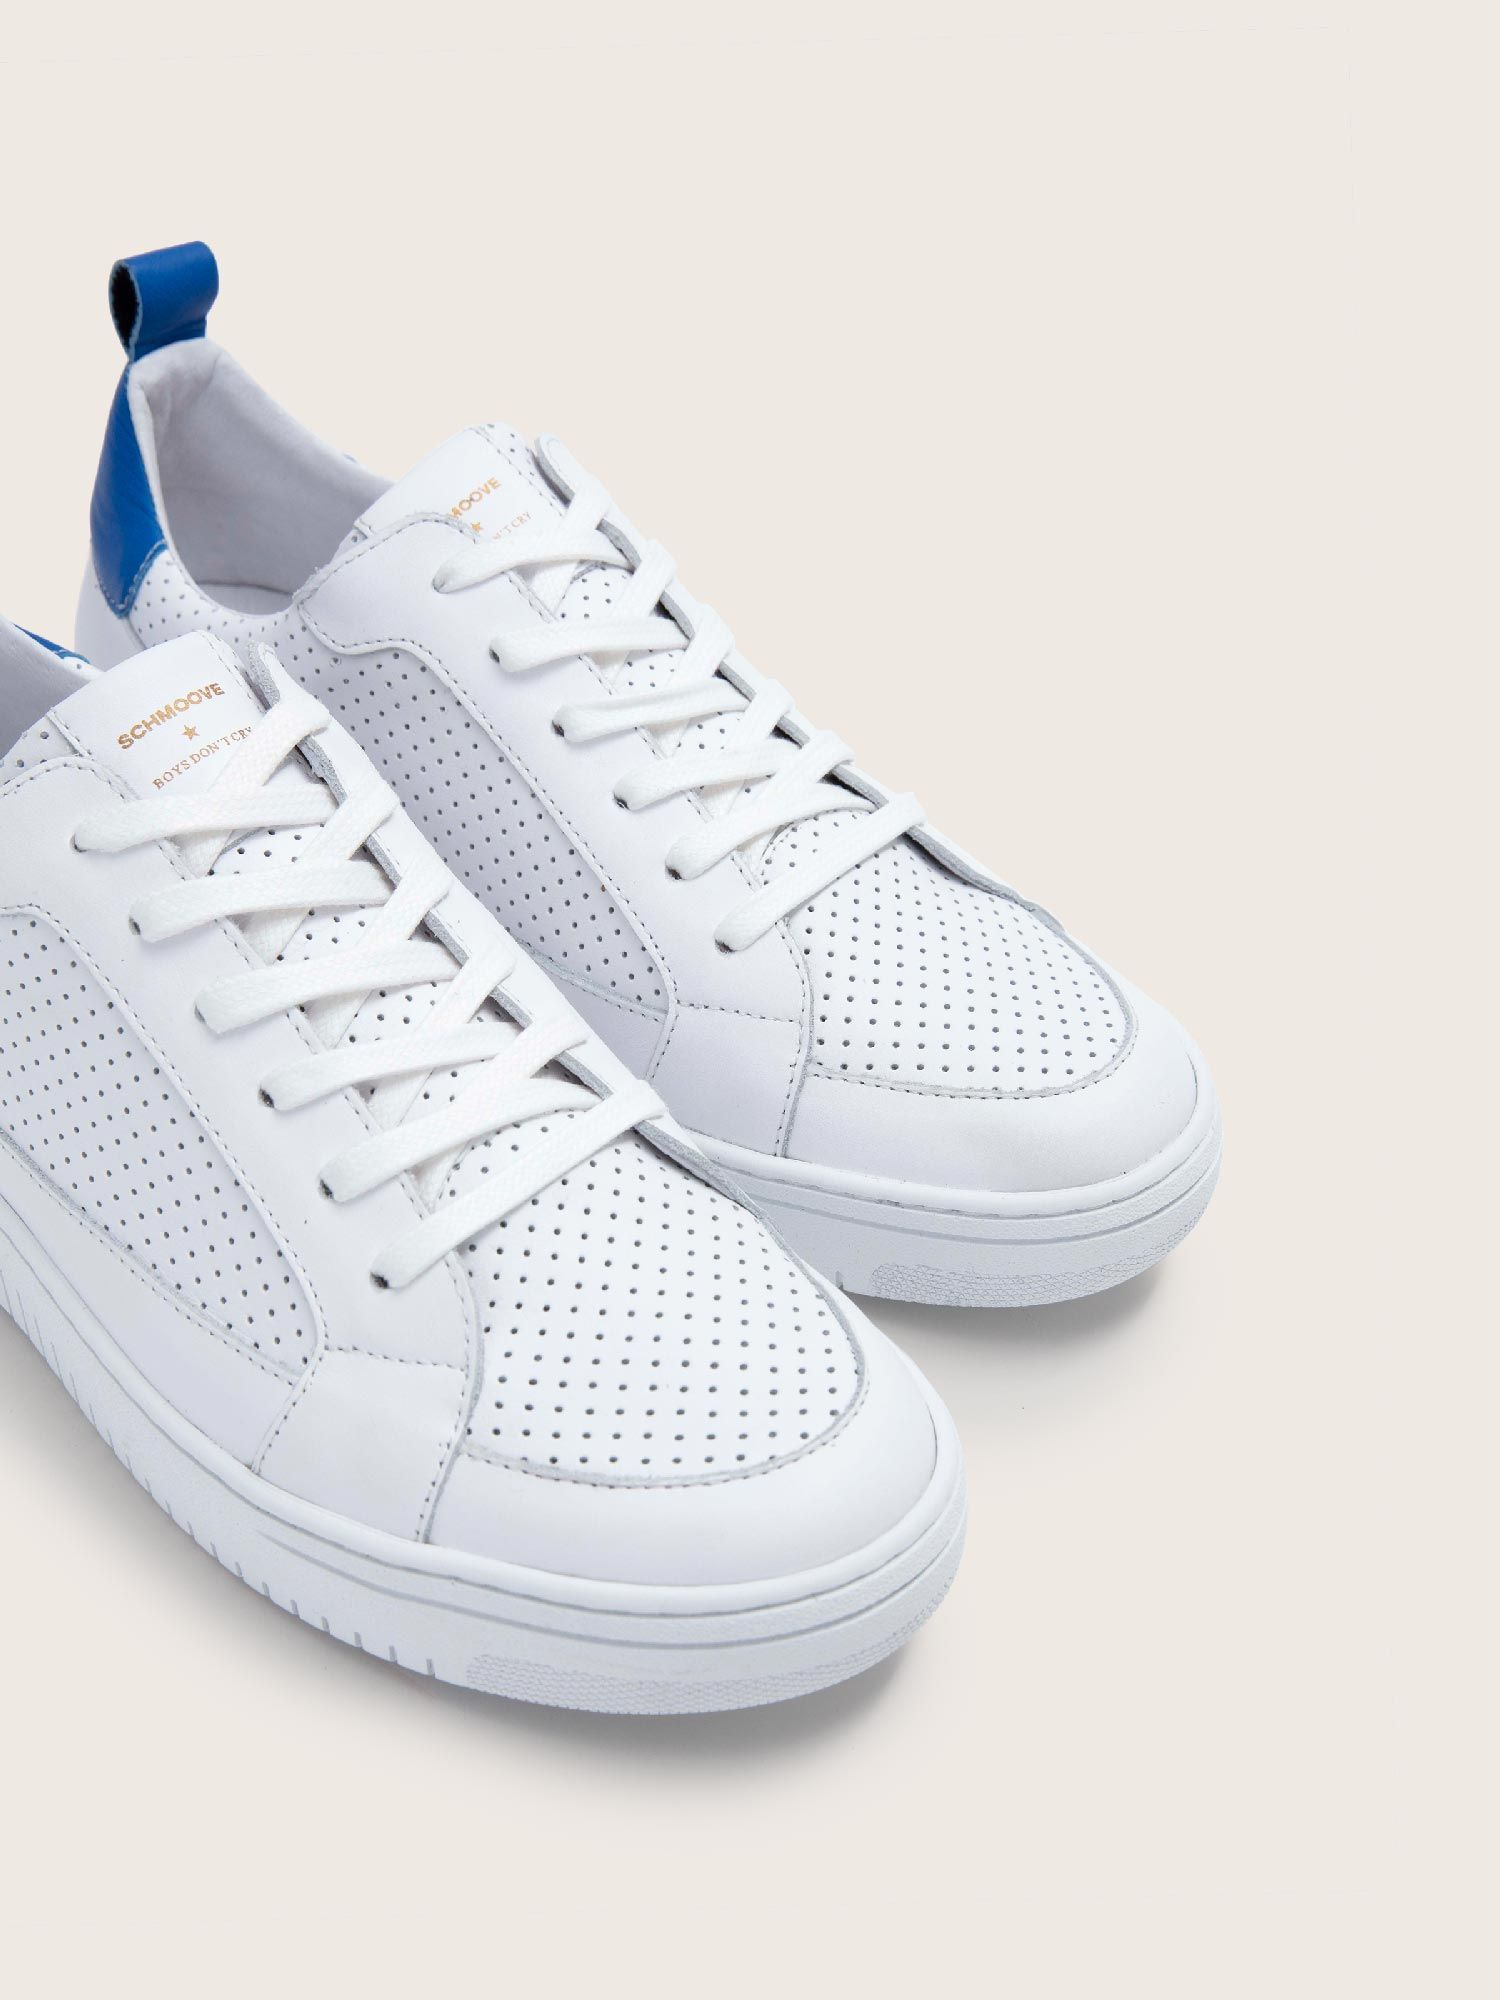 schmoove.fr EVOC CLUB - PUNCH NAP/NAPPA - WHITE/ELEC.BLUE **WM